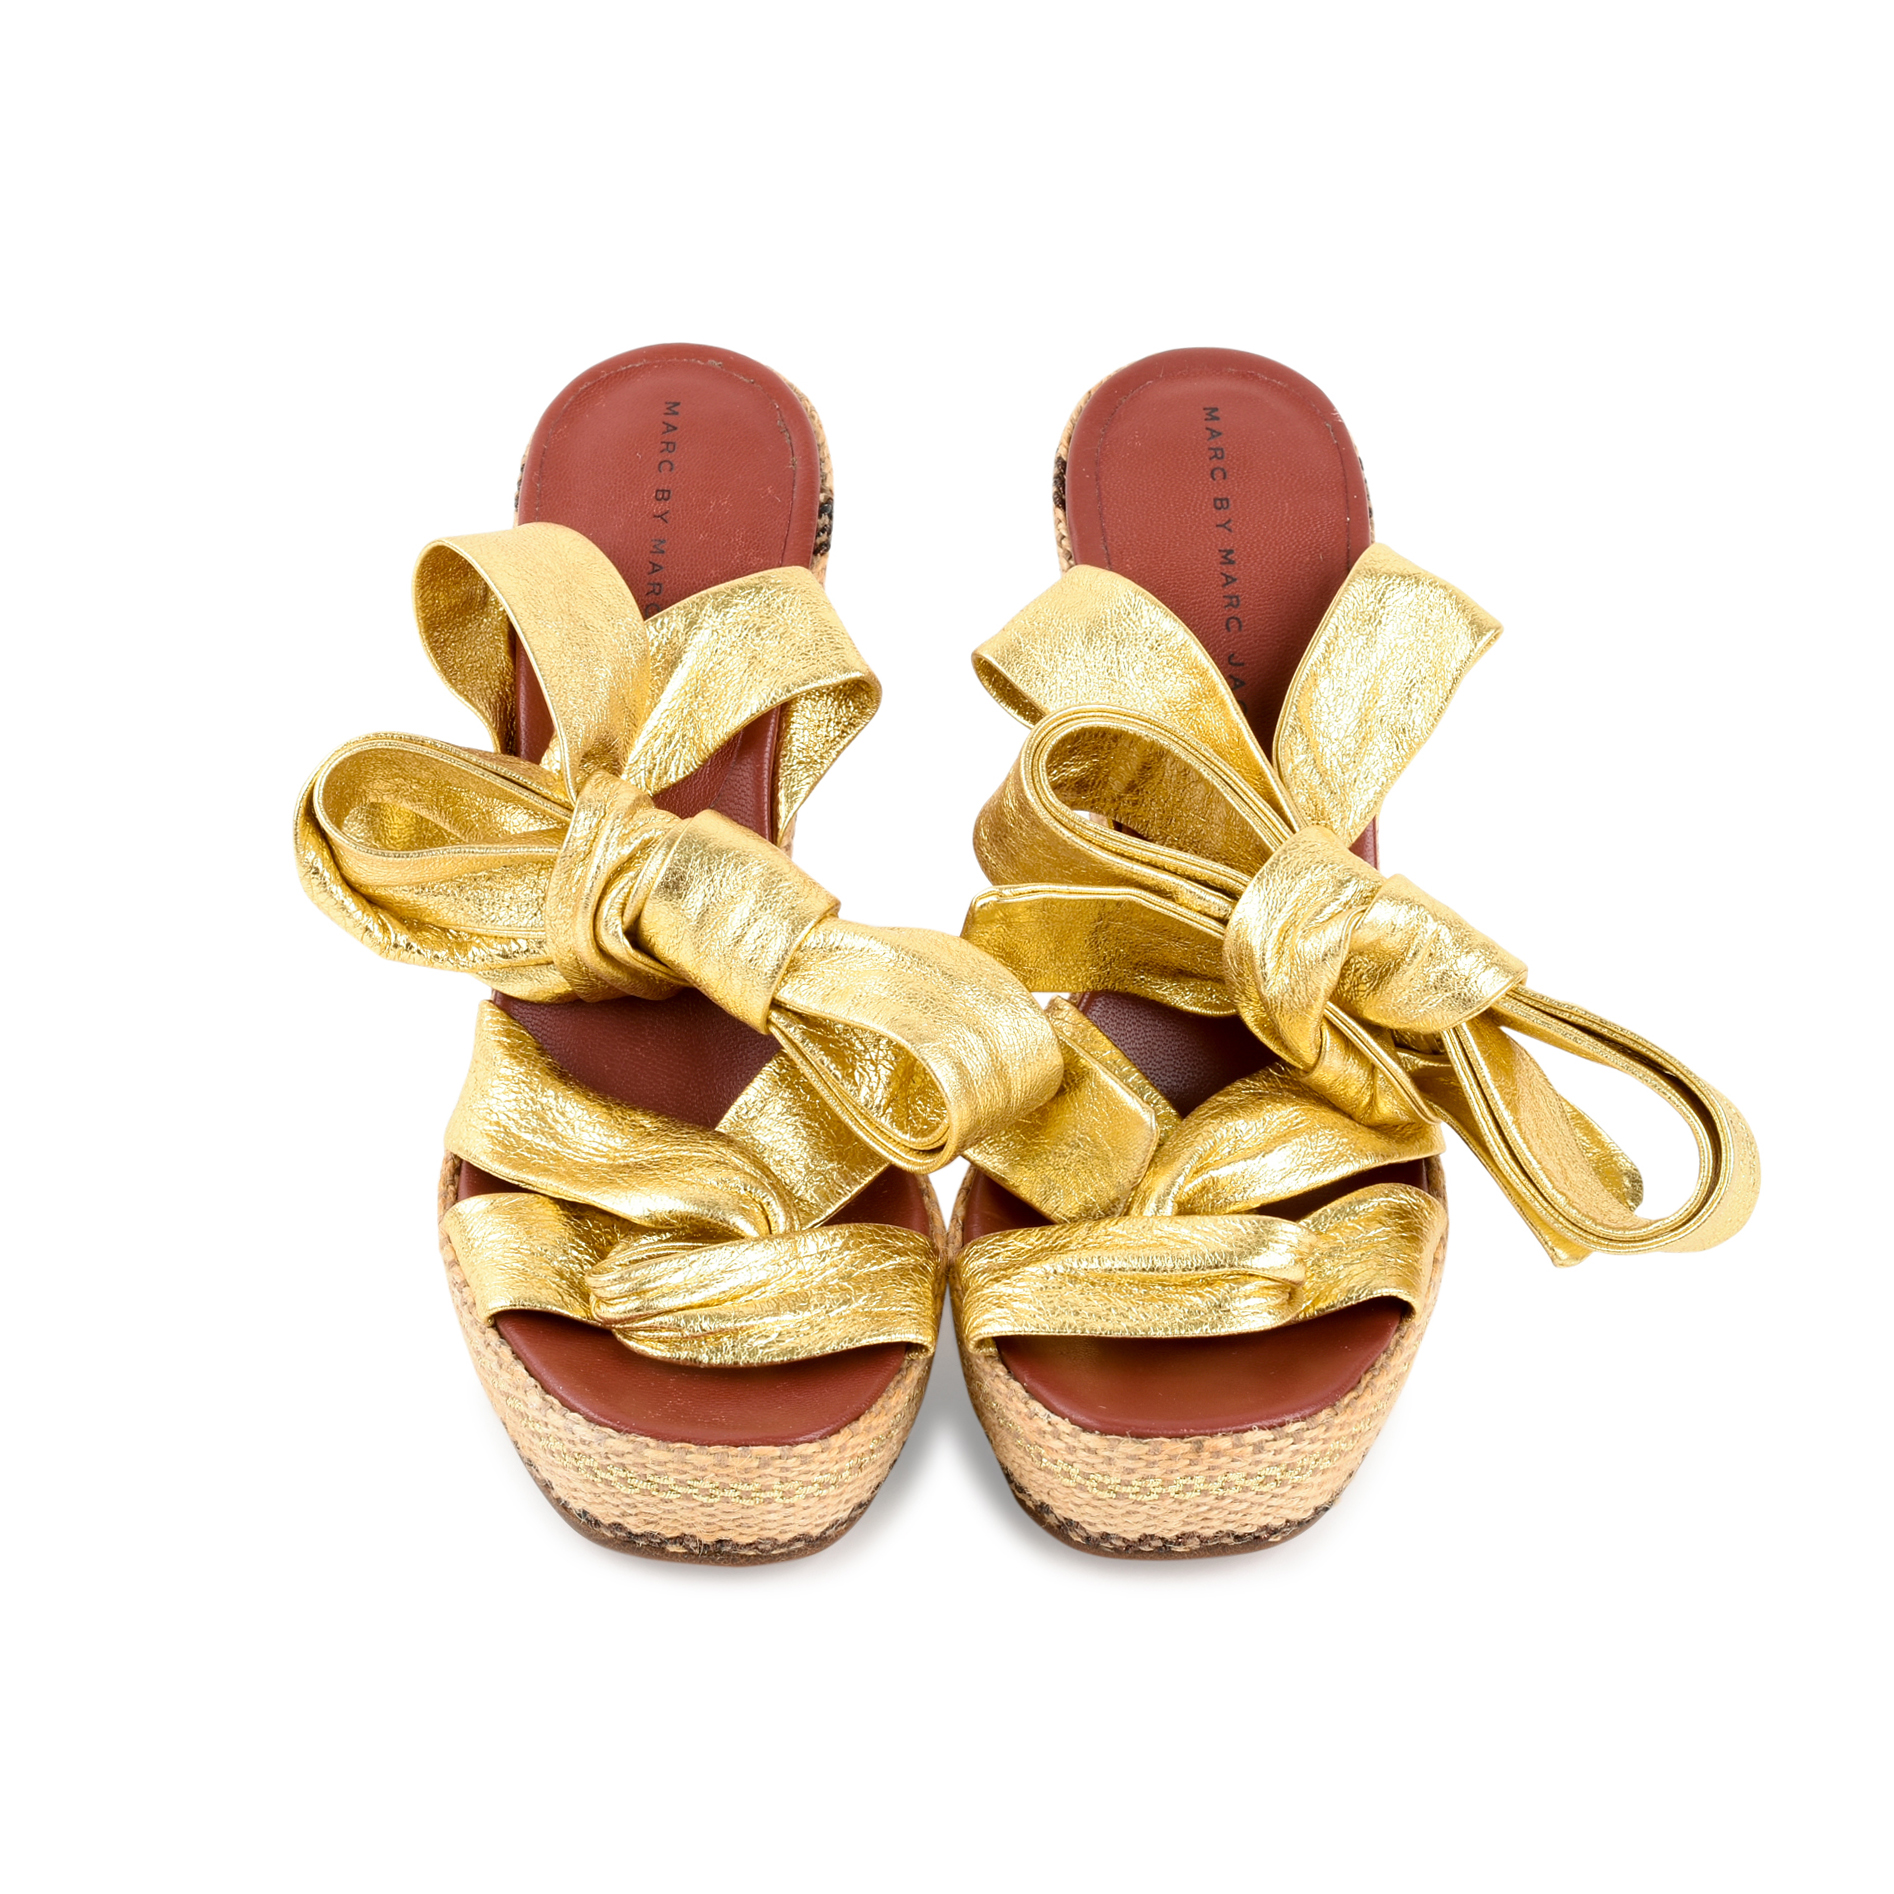 77954468a159 Authentic Second Hand Marc by Marc Jacobs Gold Multi Espadrille Wedges  (PSS-433-00004)